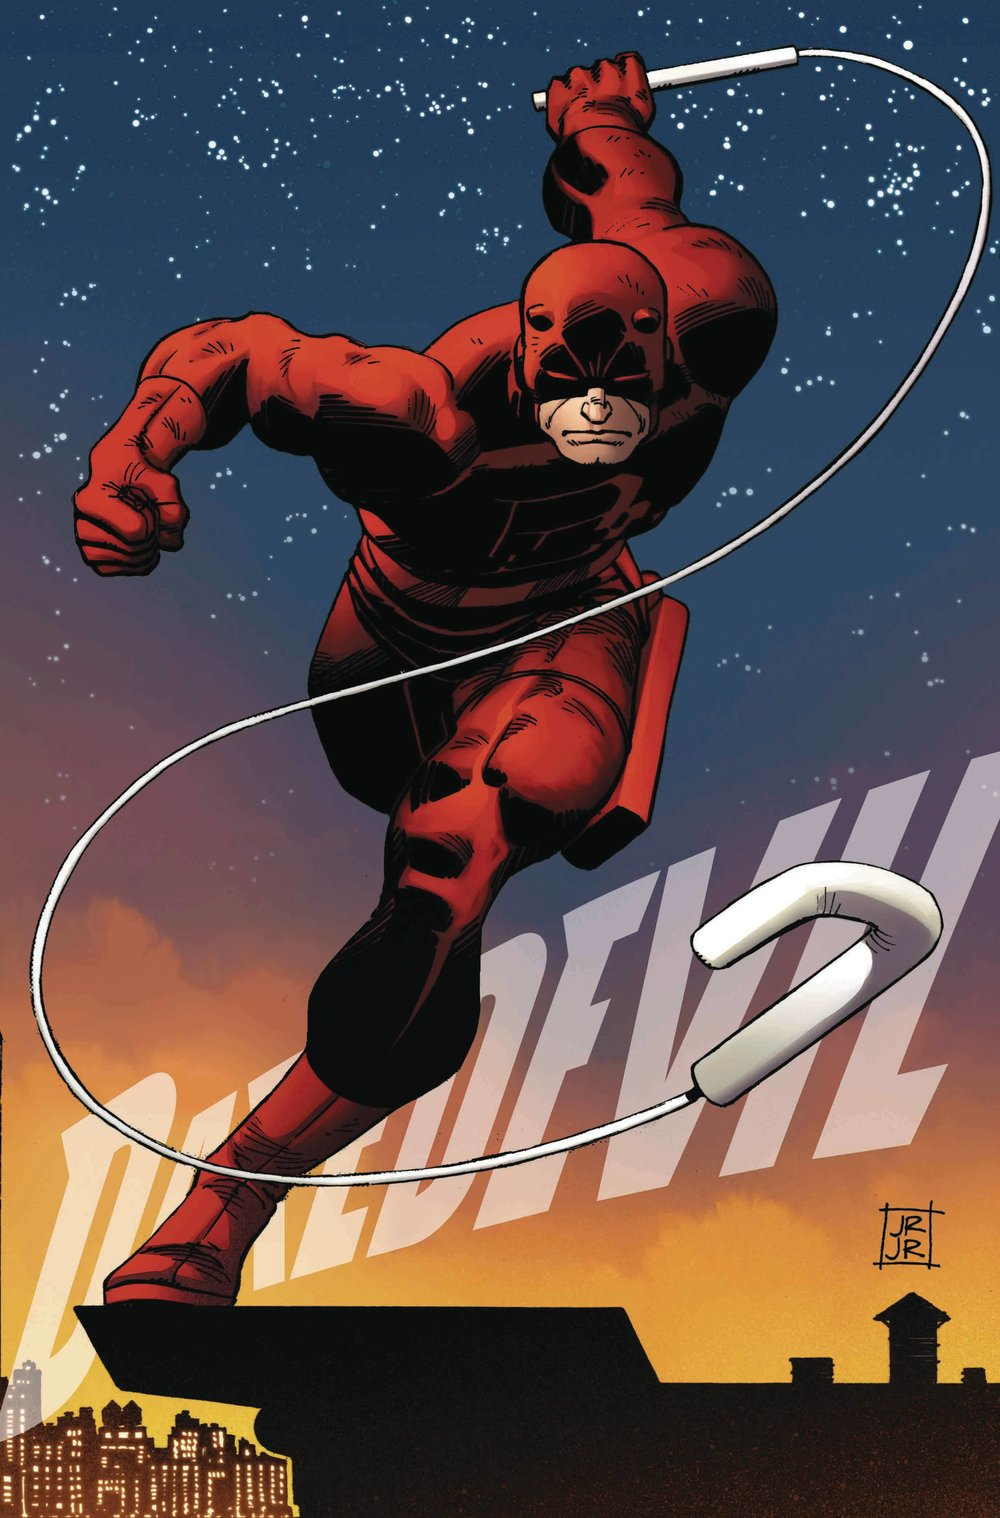 DAREDEVIL 2 JRJR HIDDEN GEM VAR.jpg